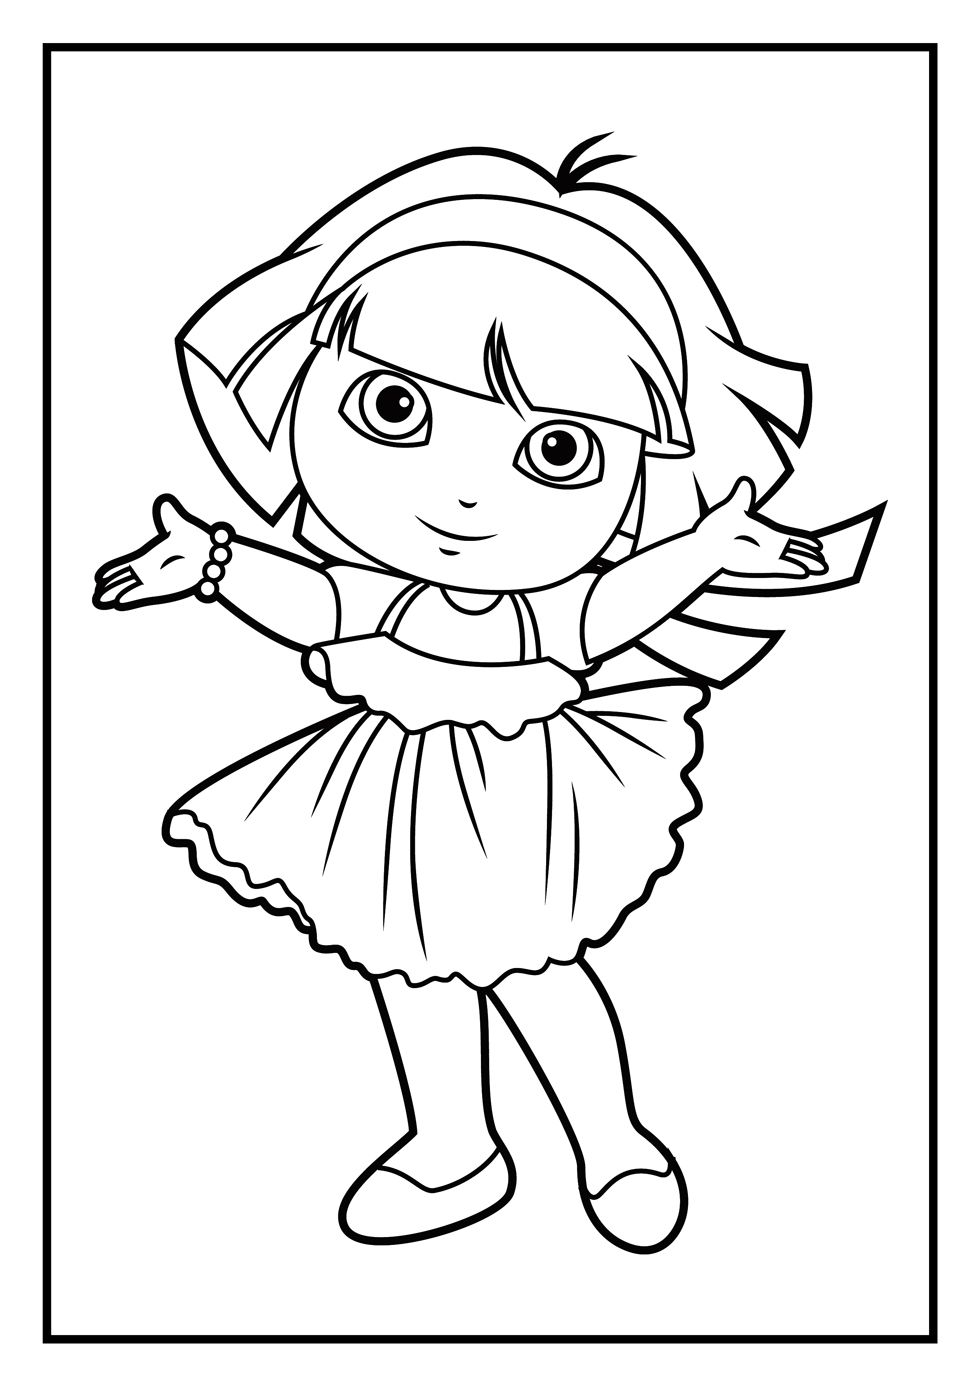 dora_coloring_pages1.jpg (980×1386) | KIDS: COLOURING BOOK ...